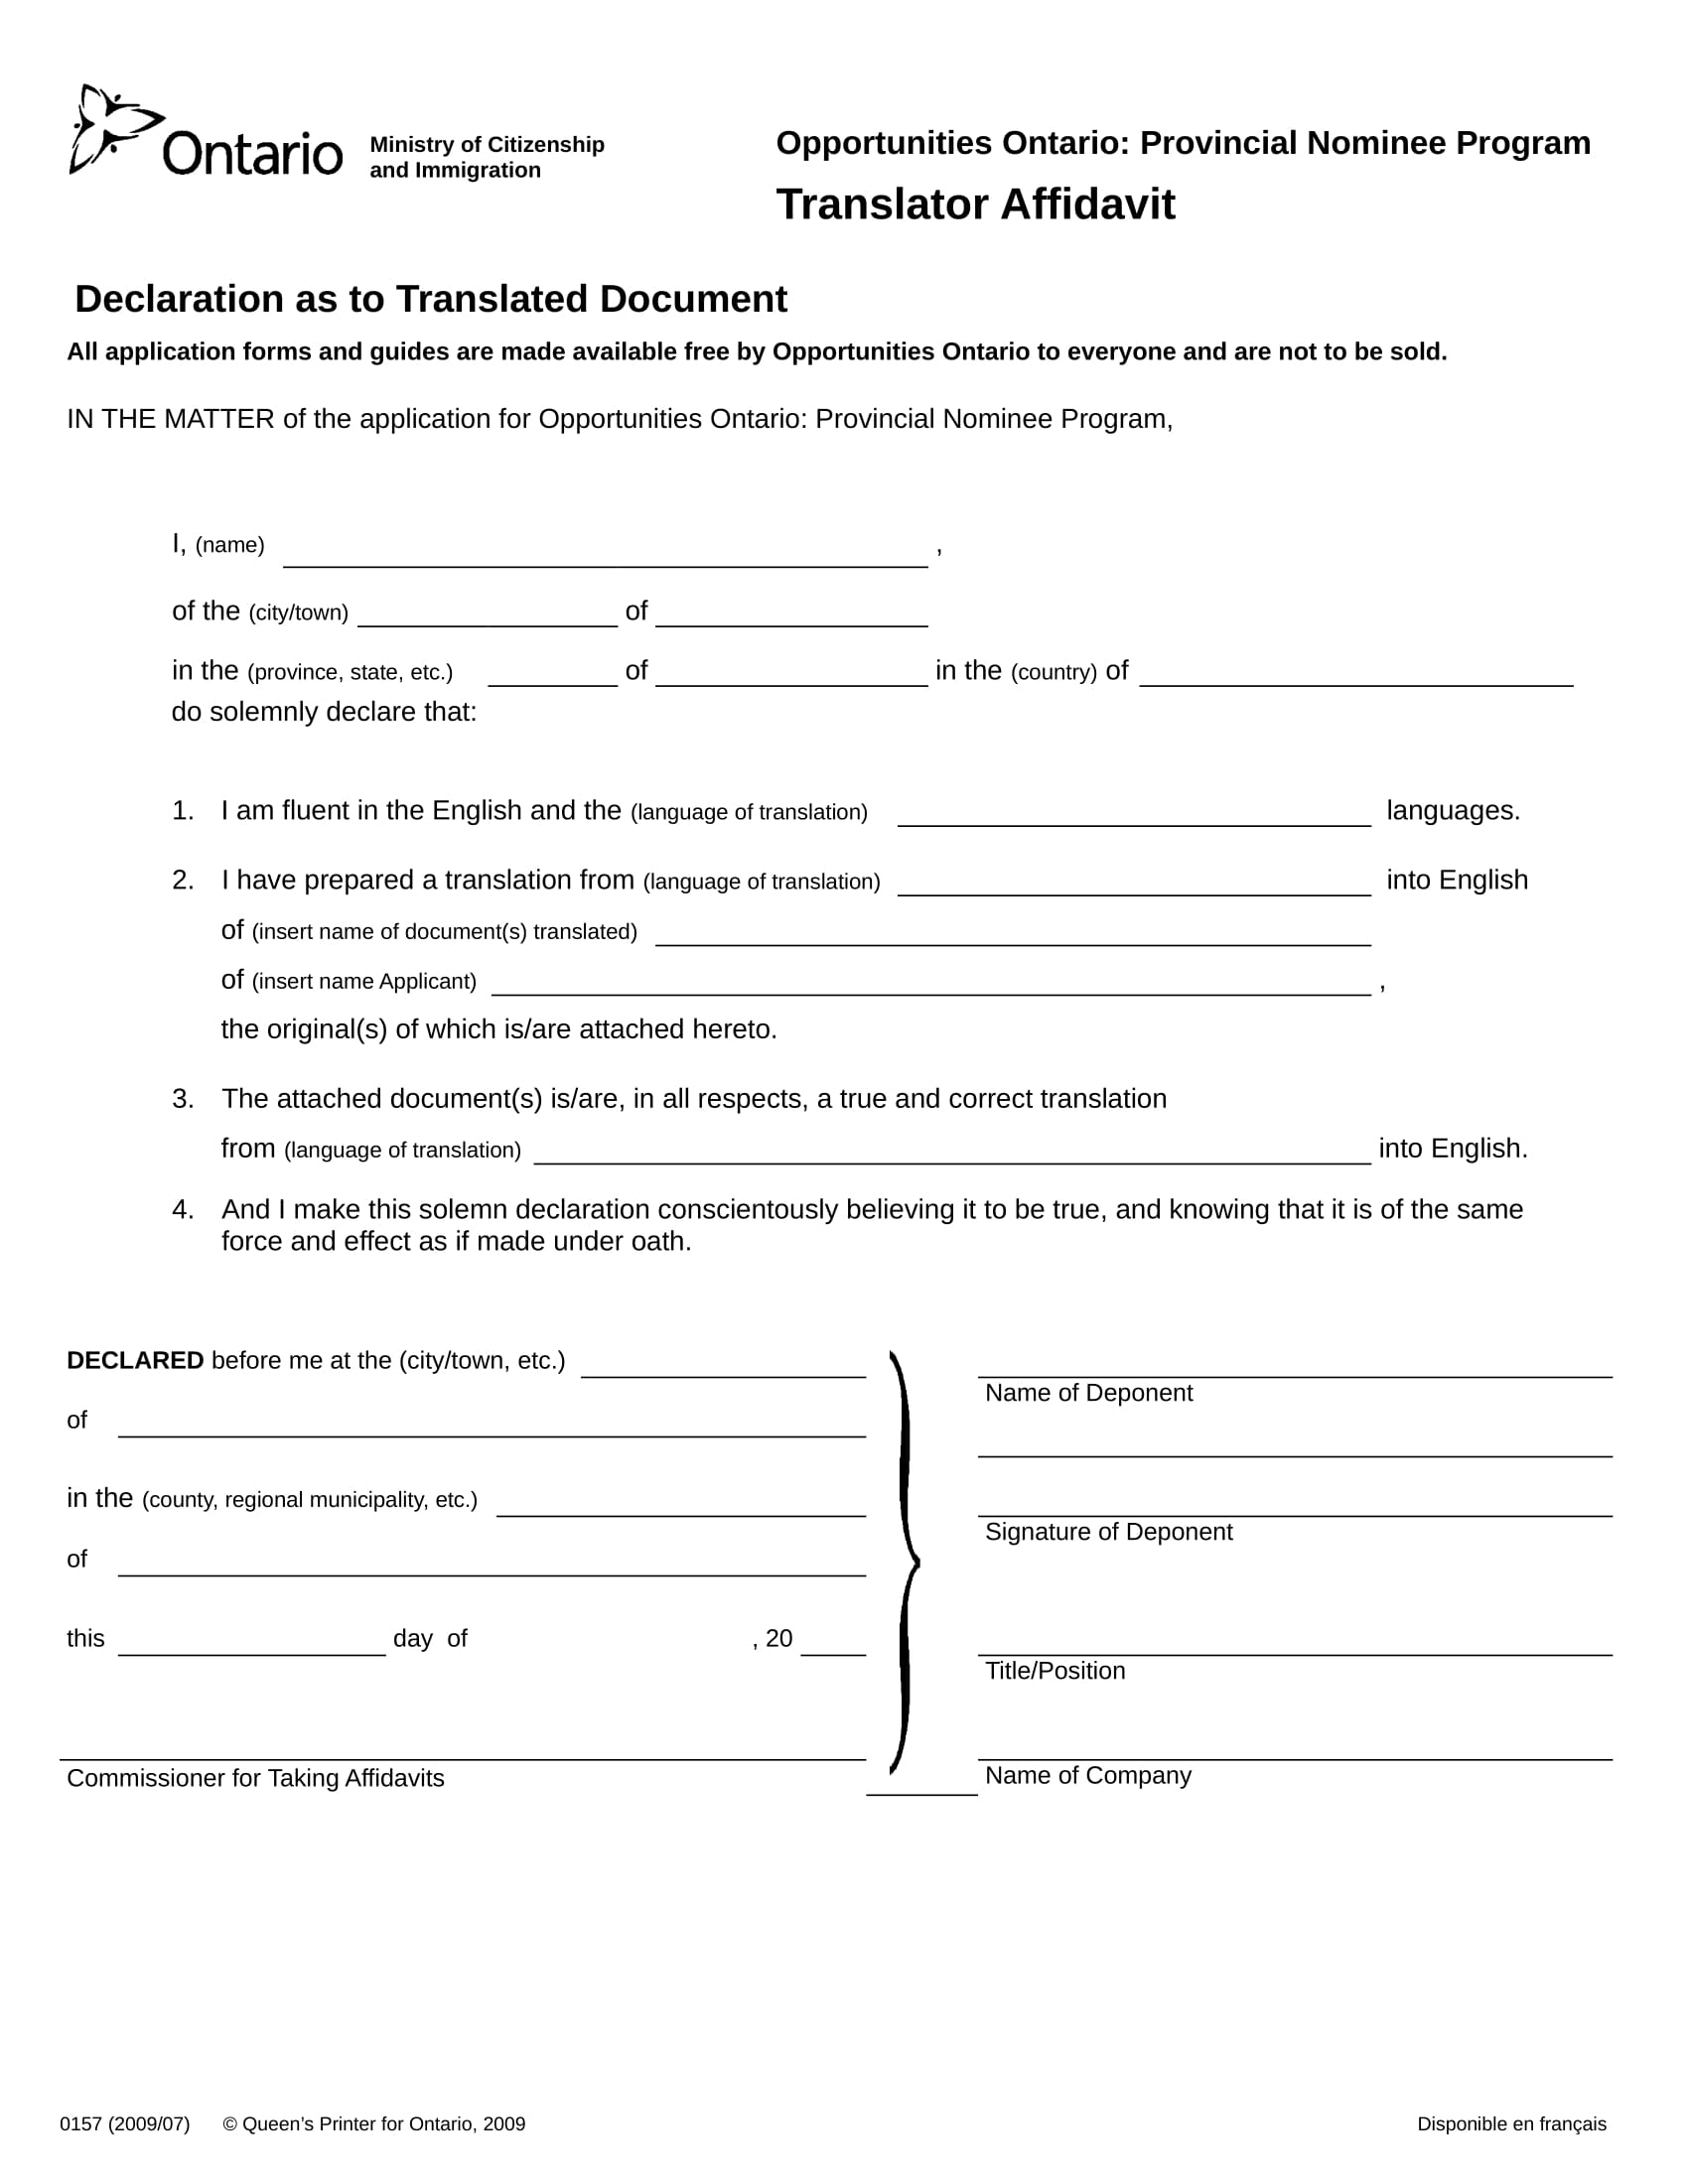 20 sample affidavit forms translator affidavit form sample yelopaper Image collections